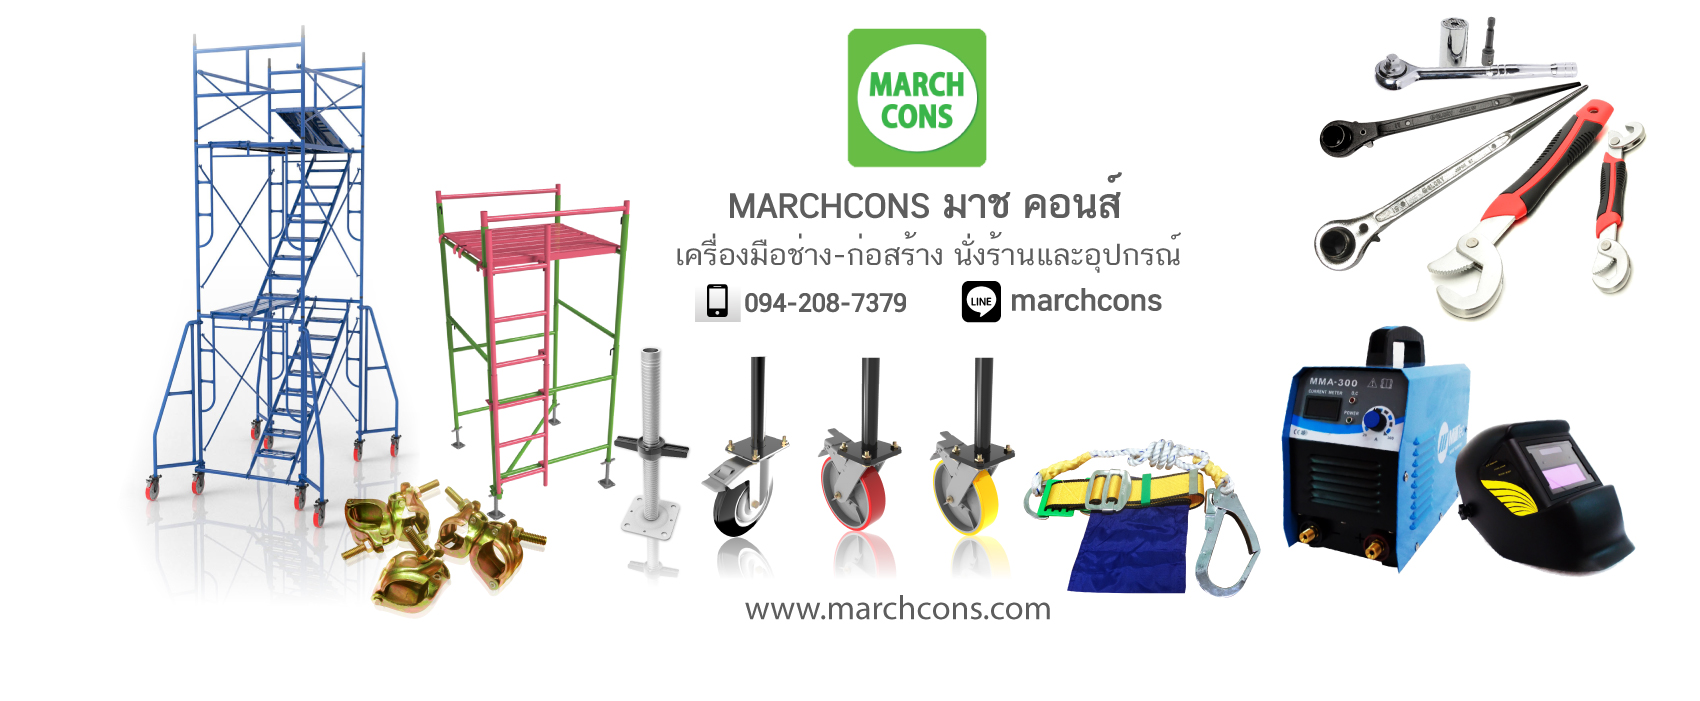 marchcons